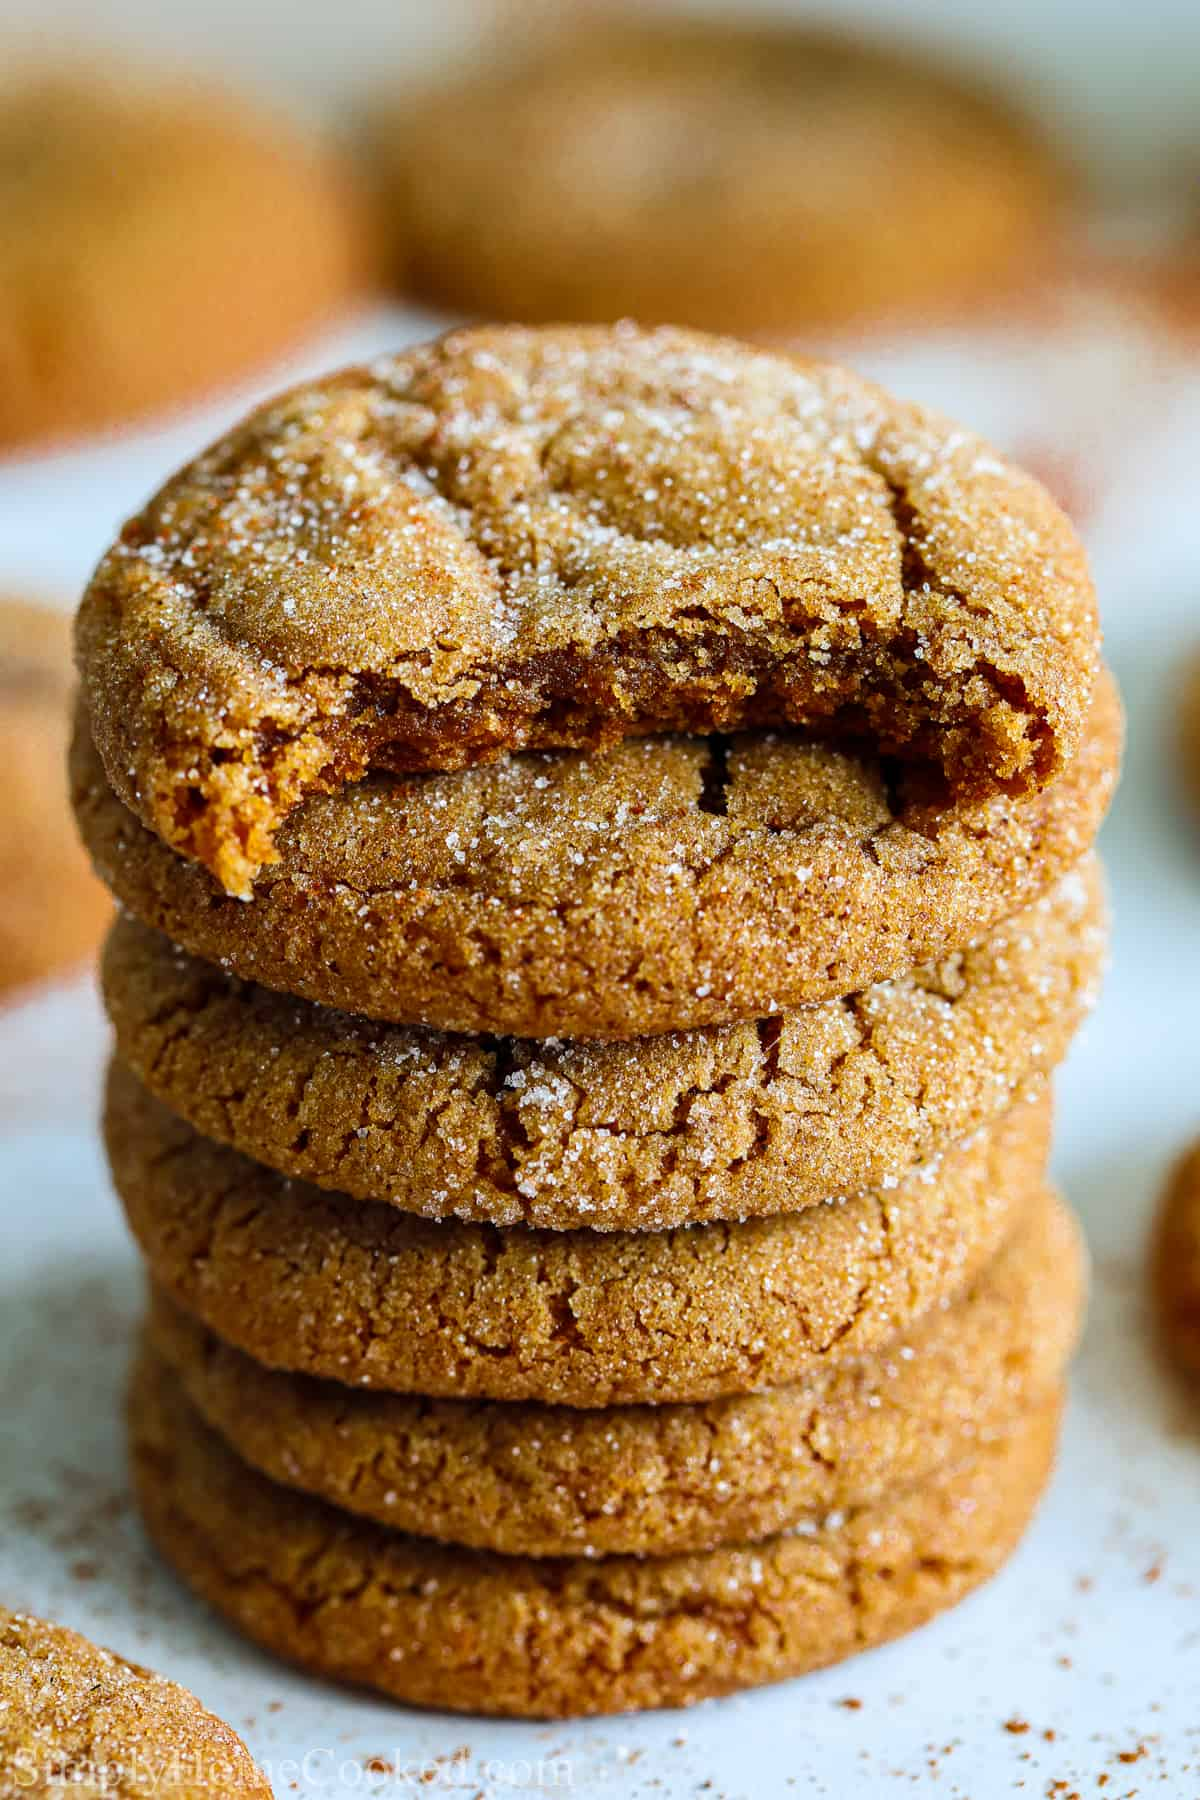 Stack of Chewy Ginger Molasses Cookies, the top one missing a bite.